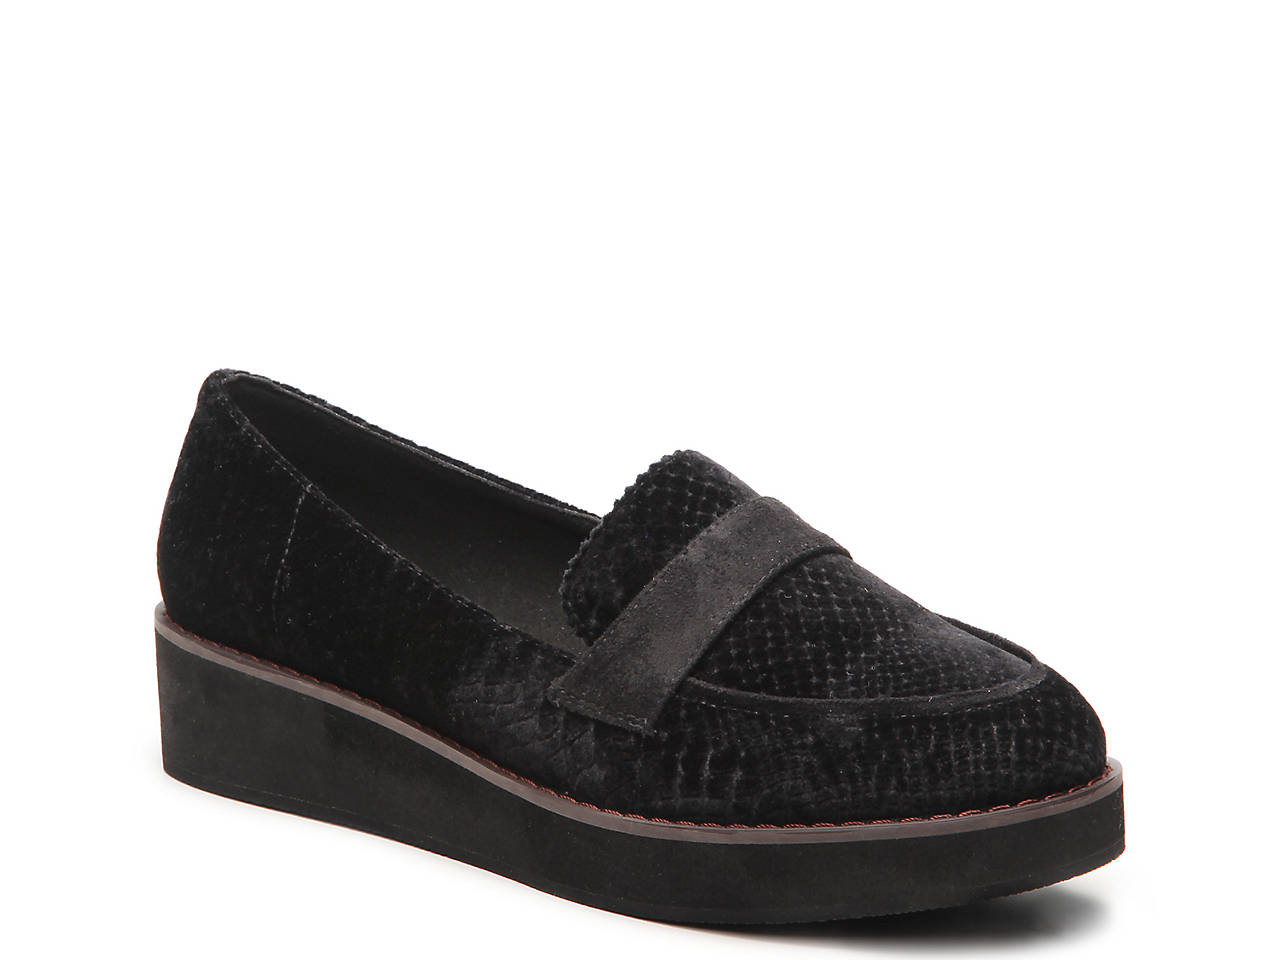 1e2445036d1 Call It Spring Ackerly Platform Loafer Men s Shoes